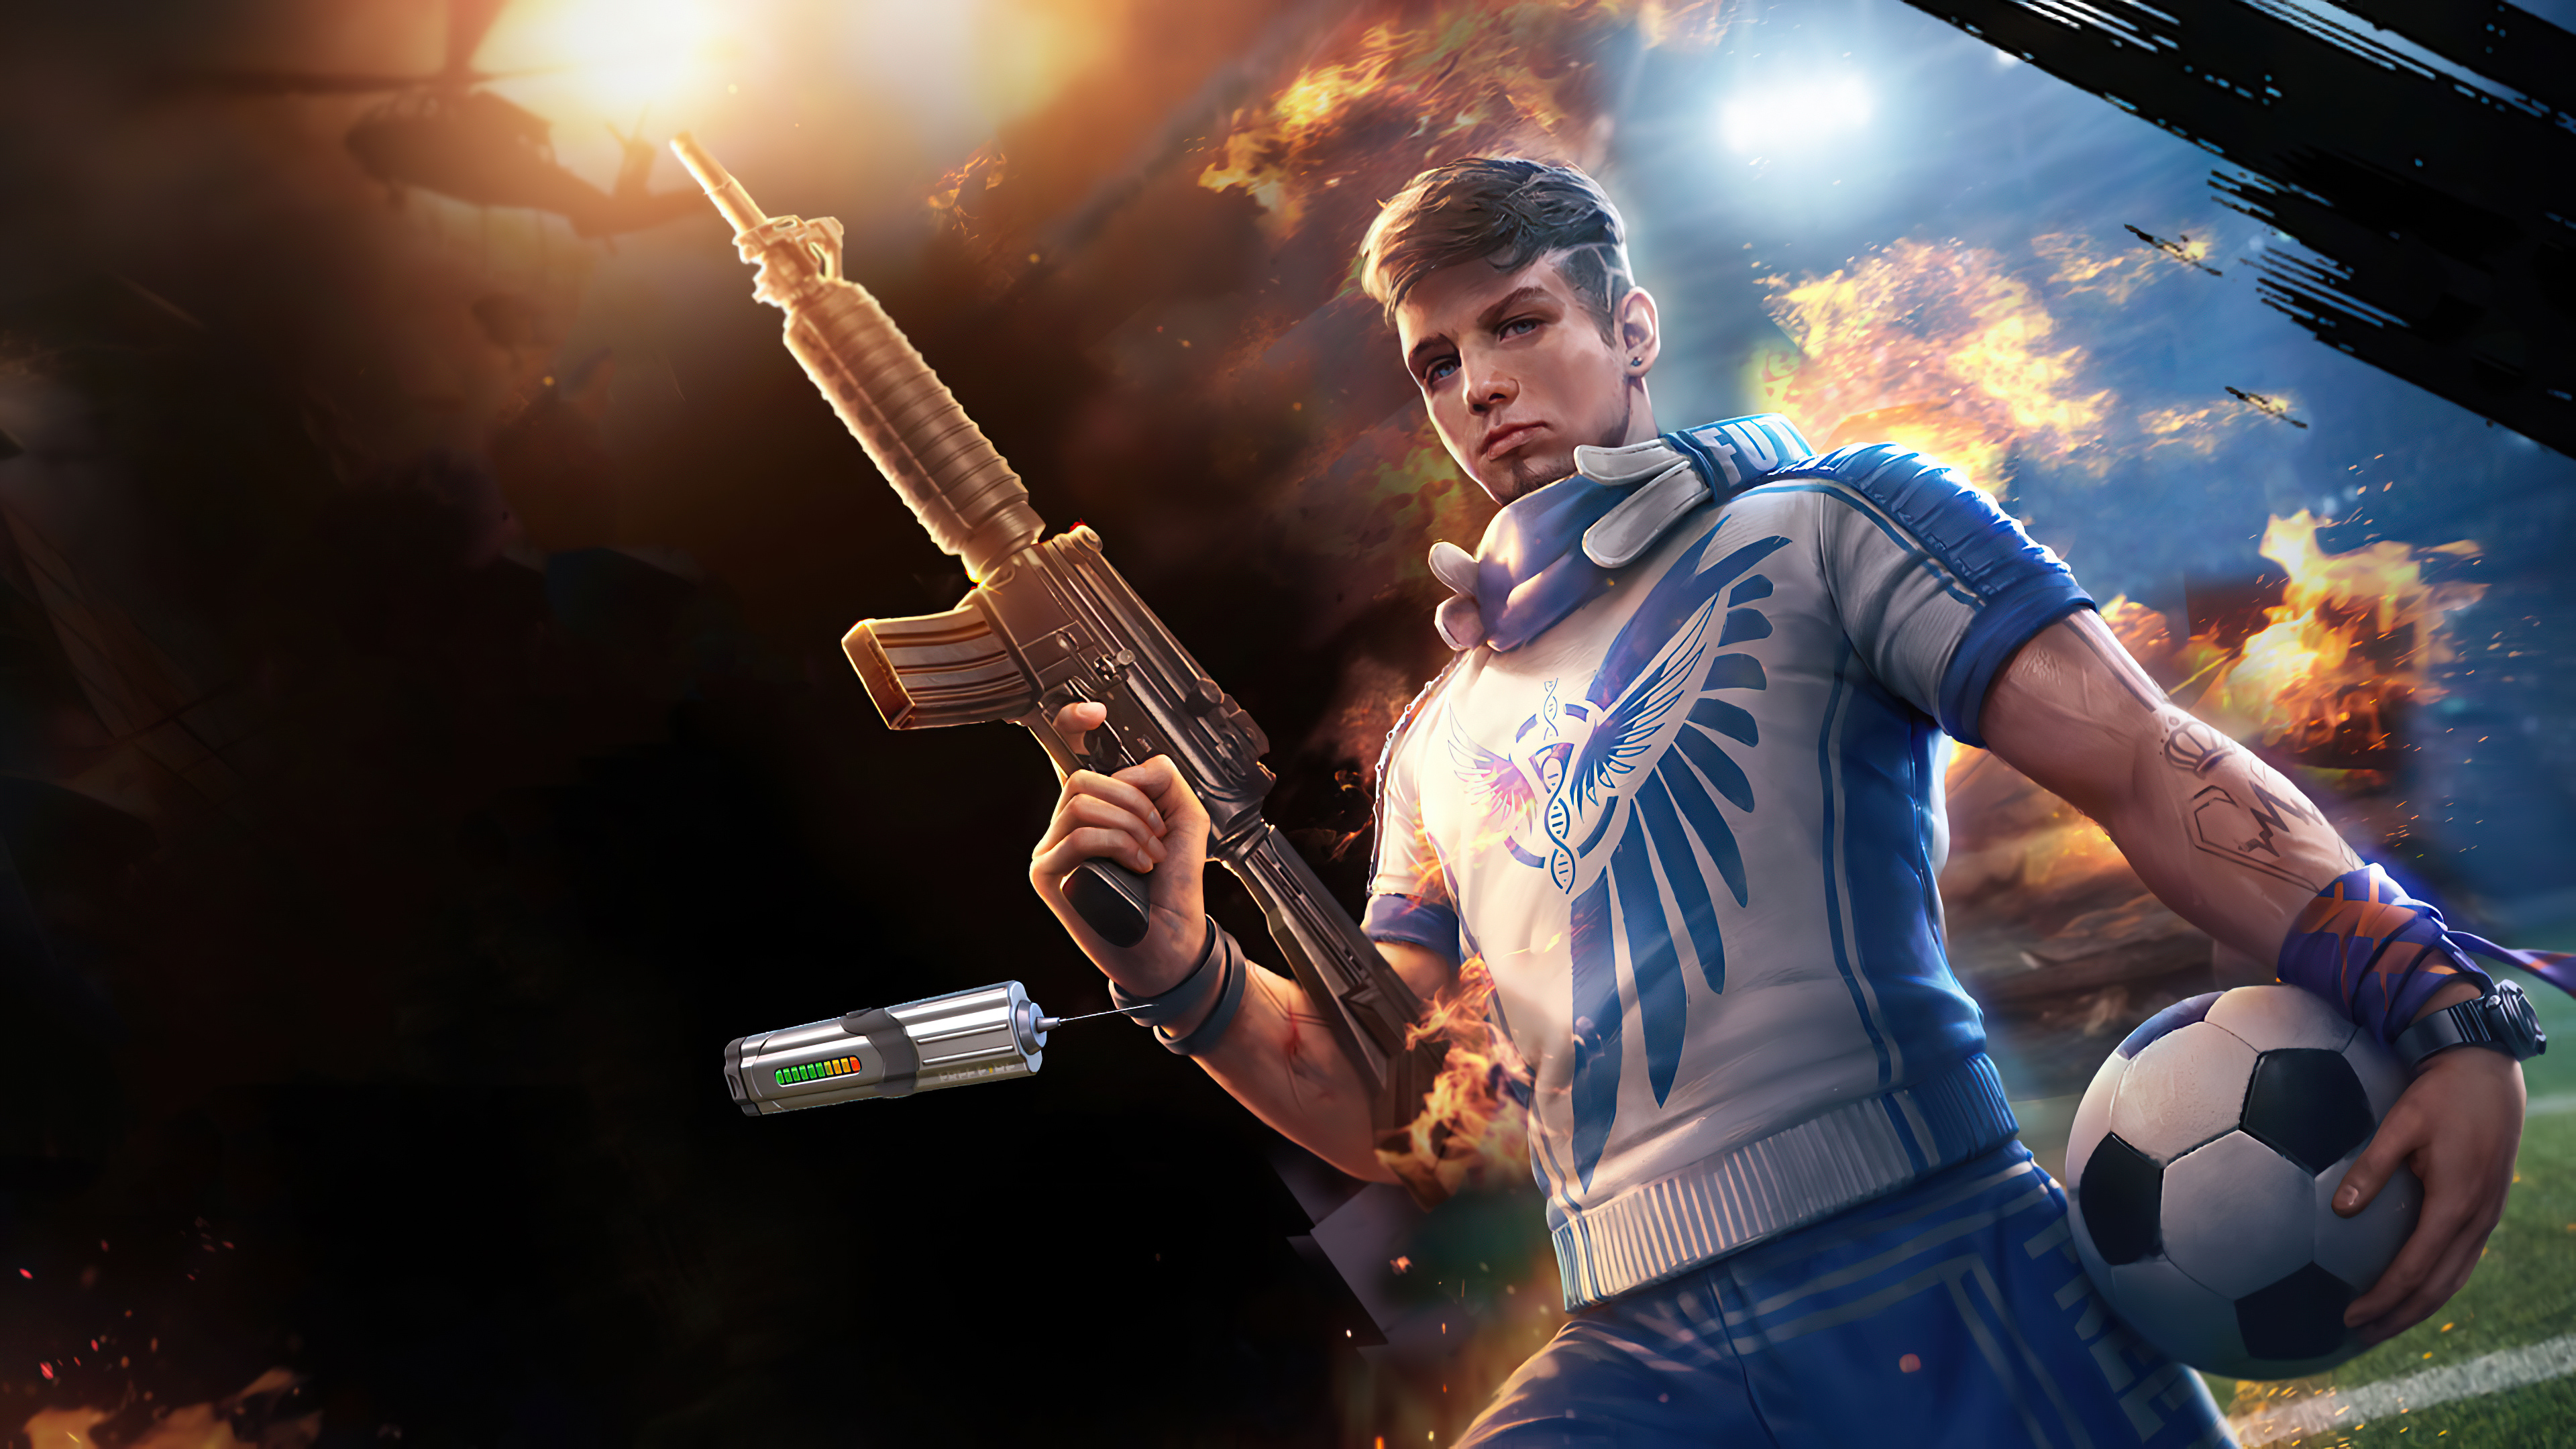 Luqueta Garena Free Fire Game Hd Games 4k Wallpapers Images Backgrounds Photos And Pictures